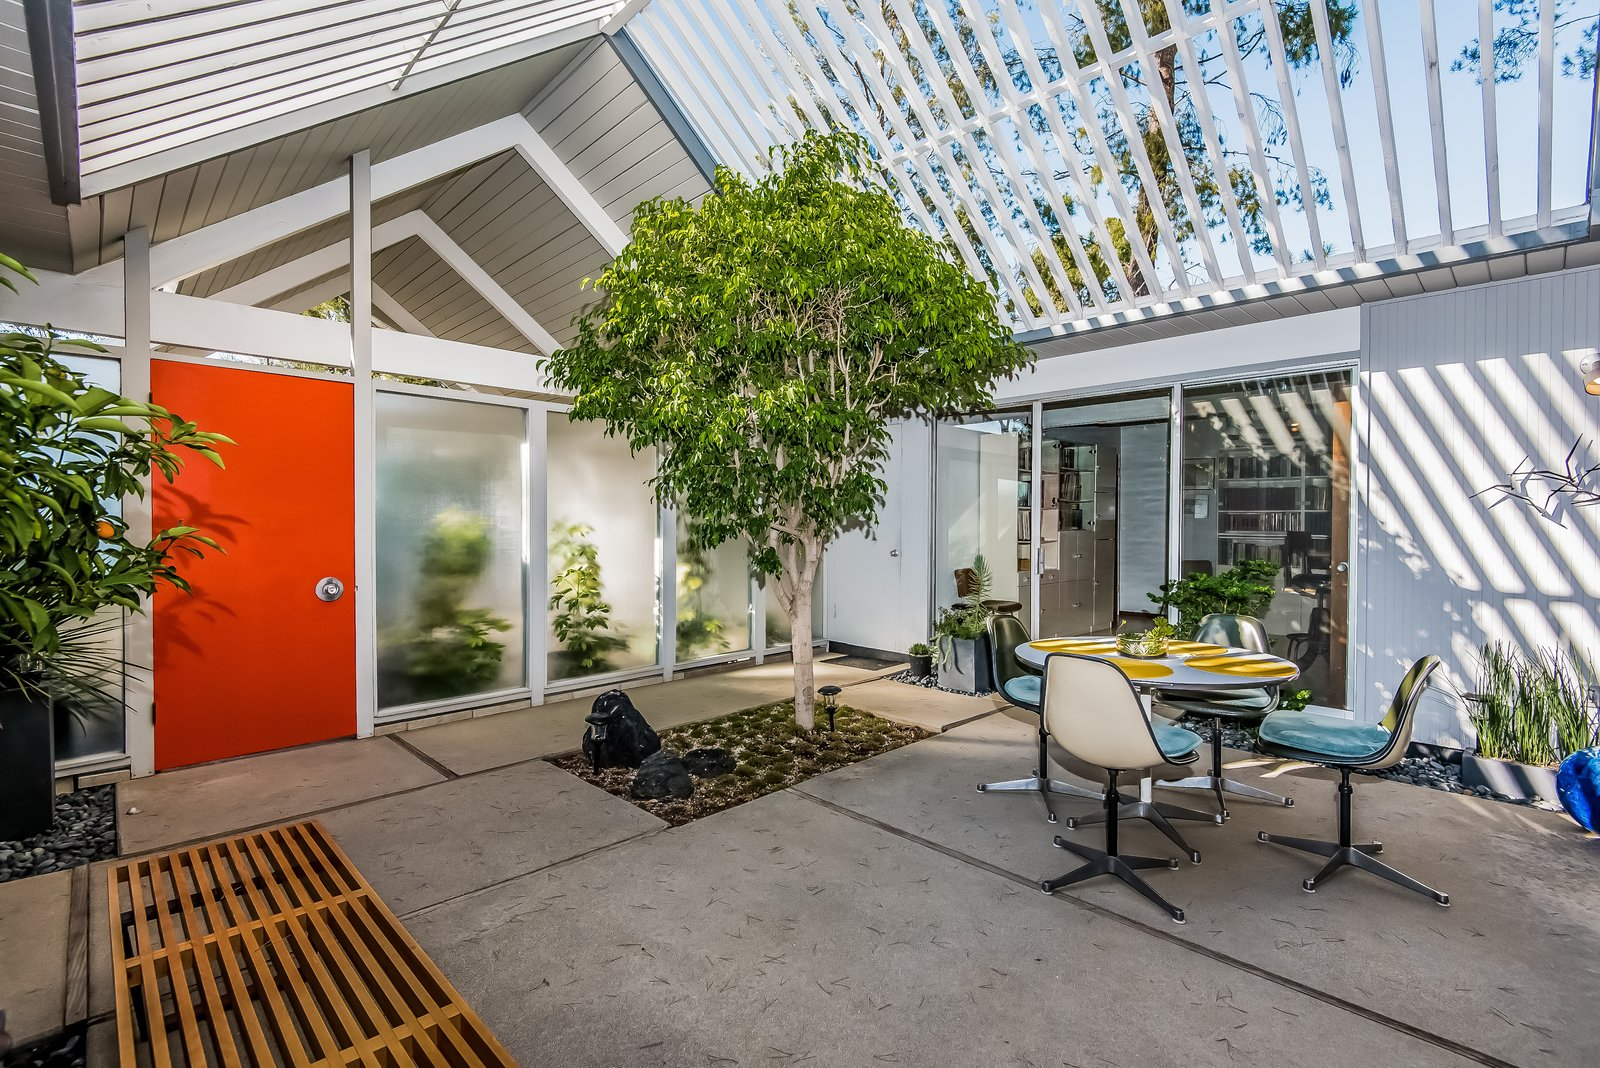 A covered entrance doubling as a carport leads to the square atrium, where cutouts in the concrete allow greenery to establish a sense of the outdoors. Enclosed in glass on all four sides, the atrium opens to the living room, multipurpose room, office and retreat.  Photo 3 of 13 in With Only One Previous Set of Owners, a Pristine Eichler Home Asks $799K